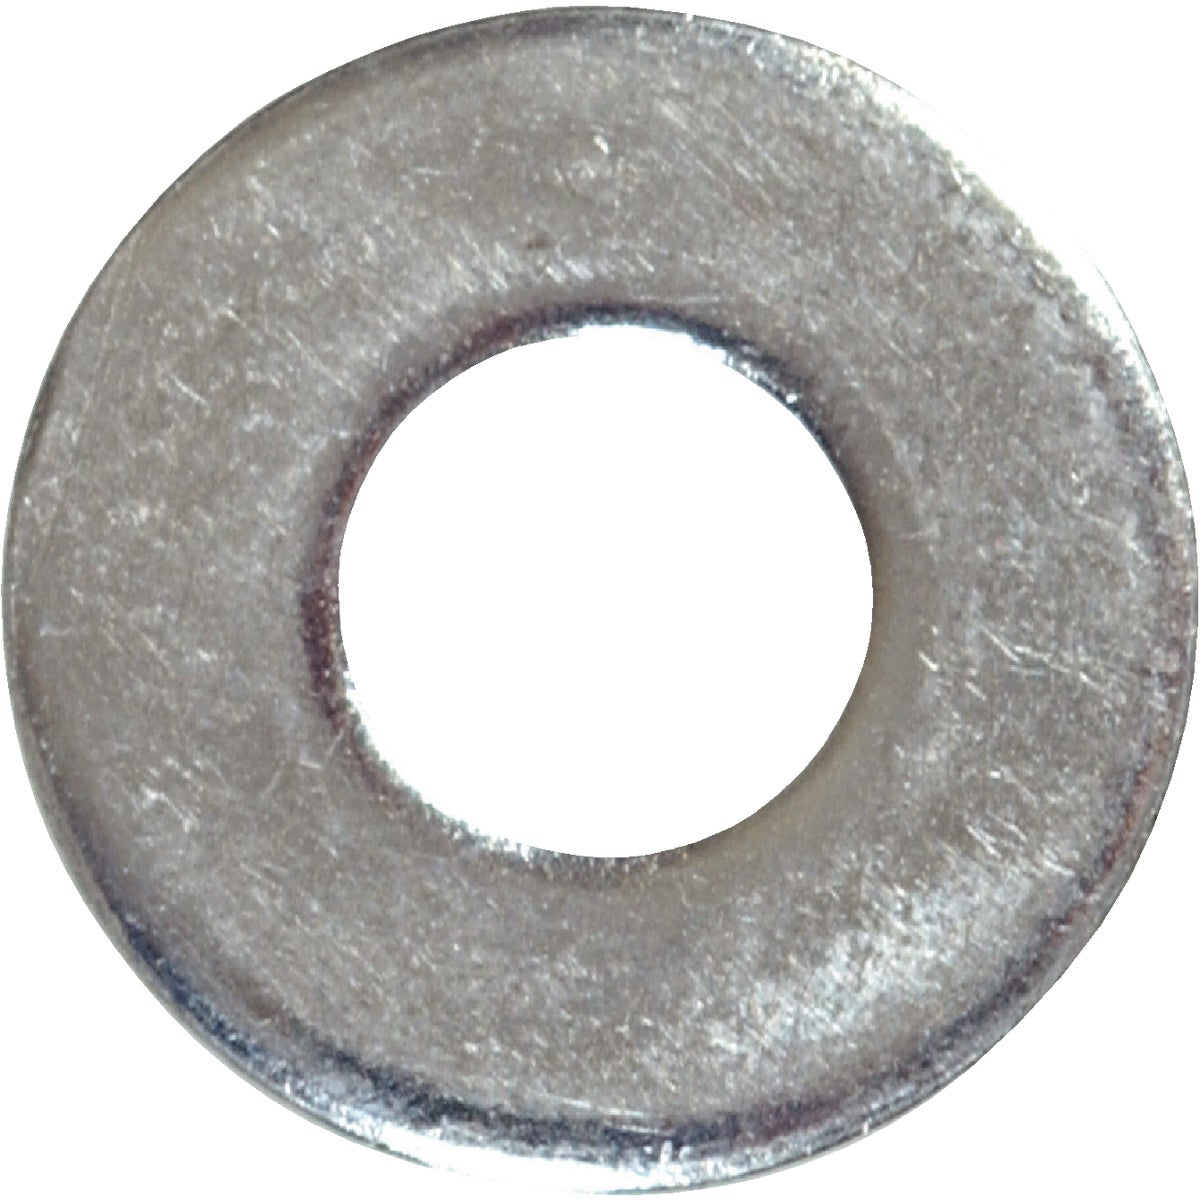 100PC #6 SAE FLAT WASHER - 280050 by Hillman Fastener